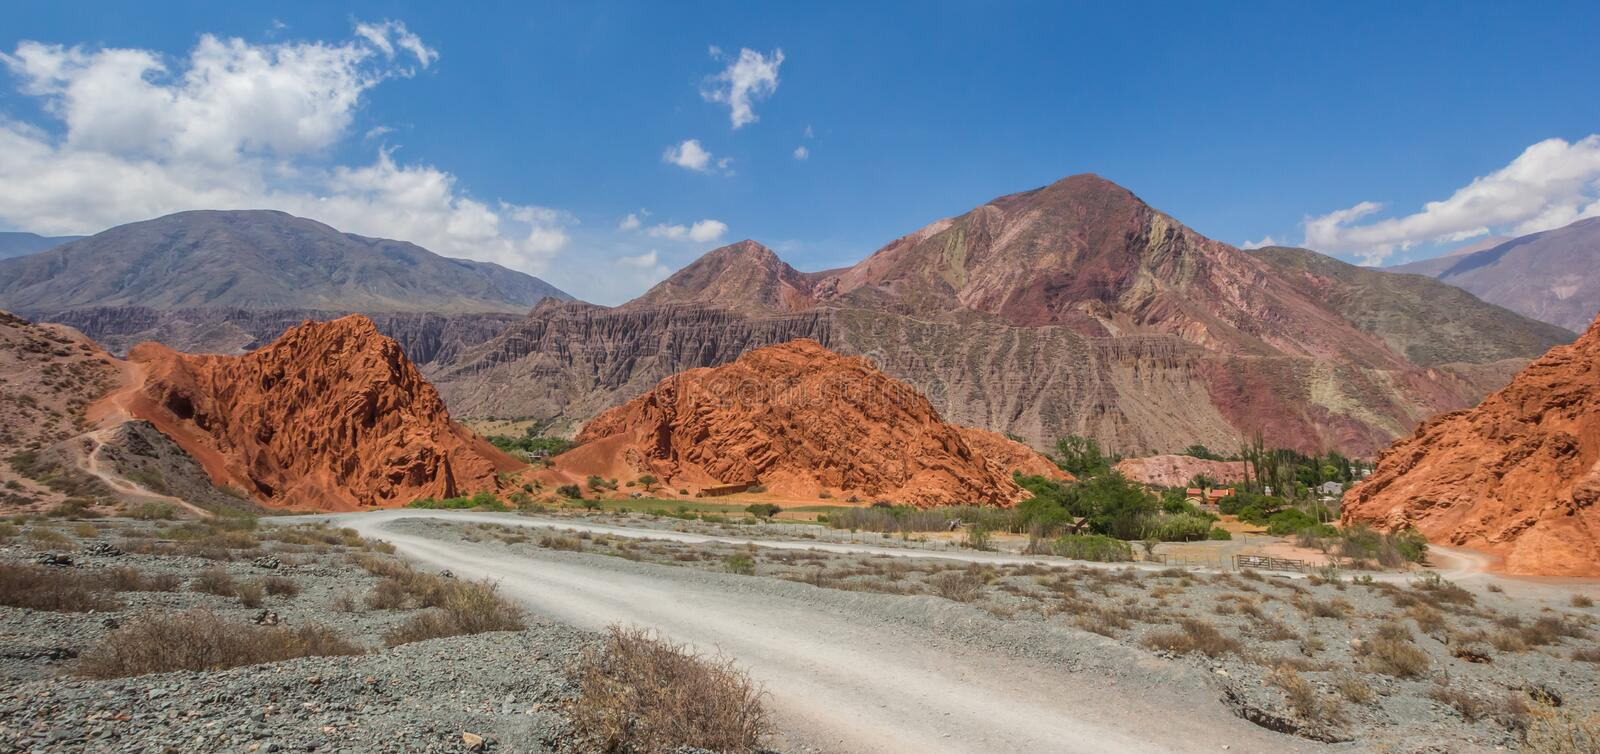 Panorama of a gravel road in the Andes mountain near Purmamarca. Argentina stock image